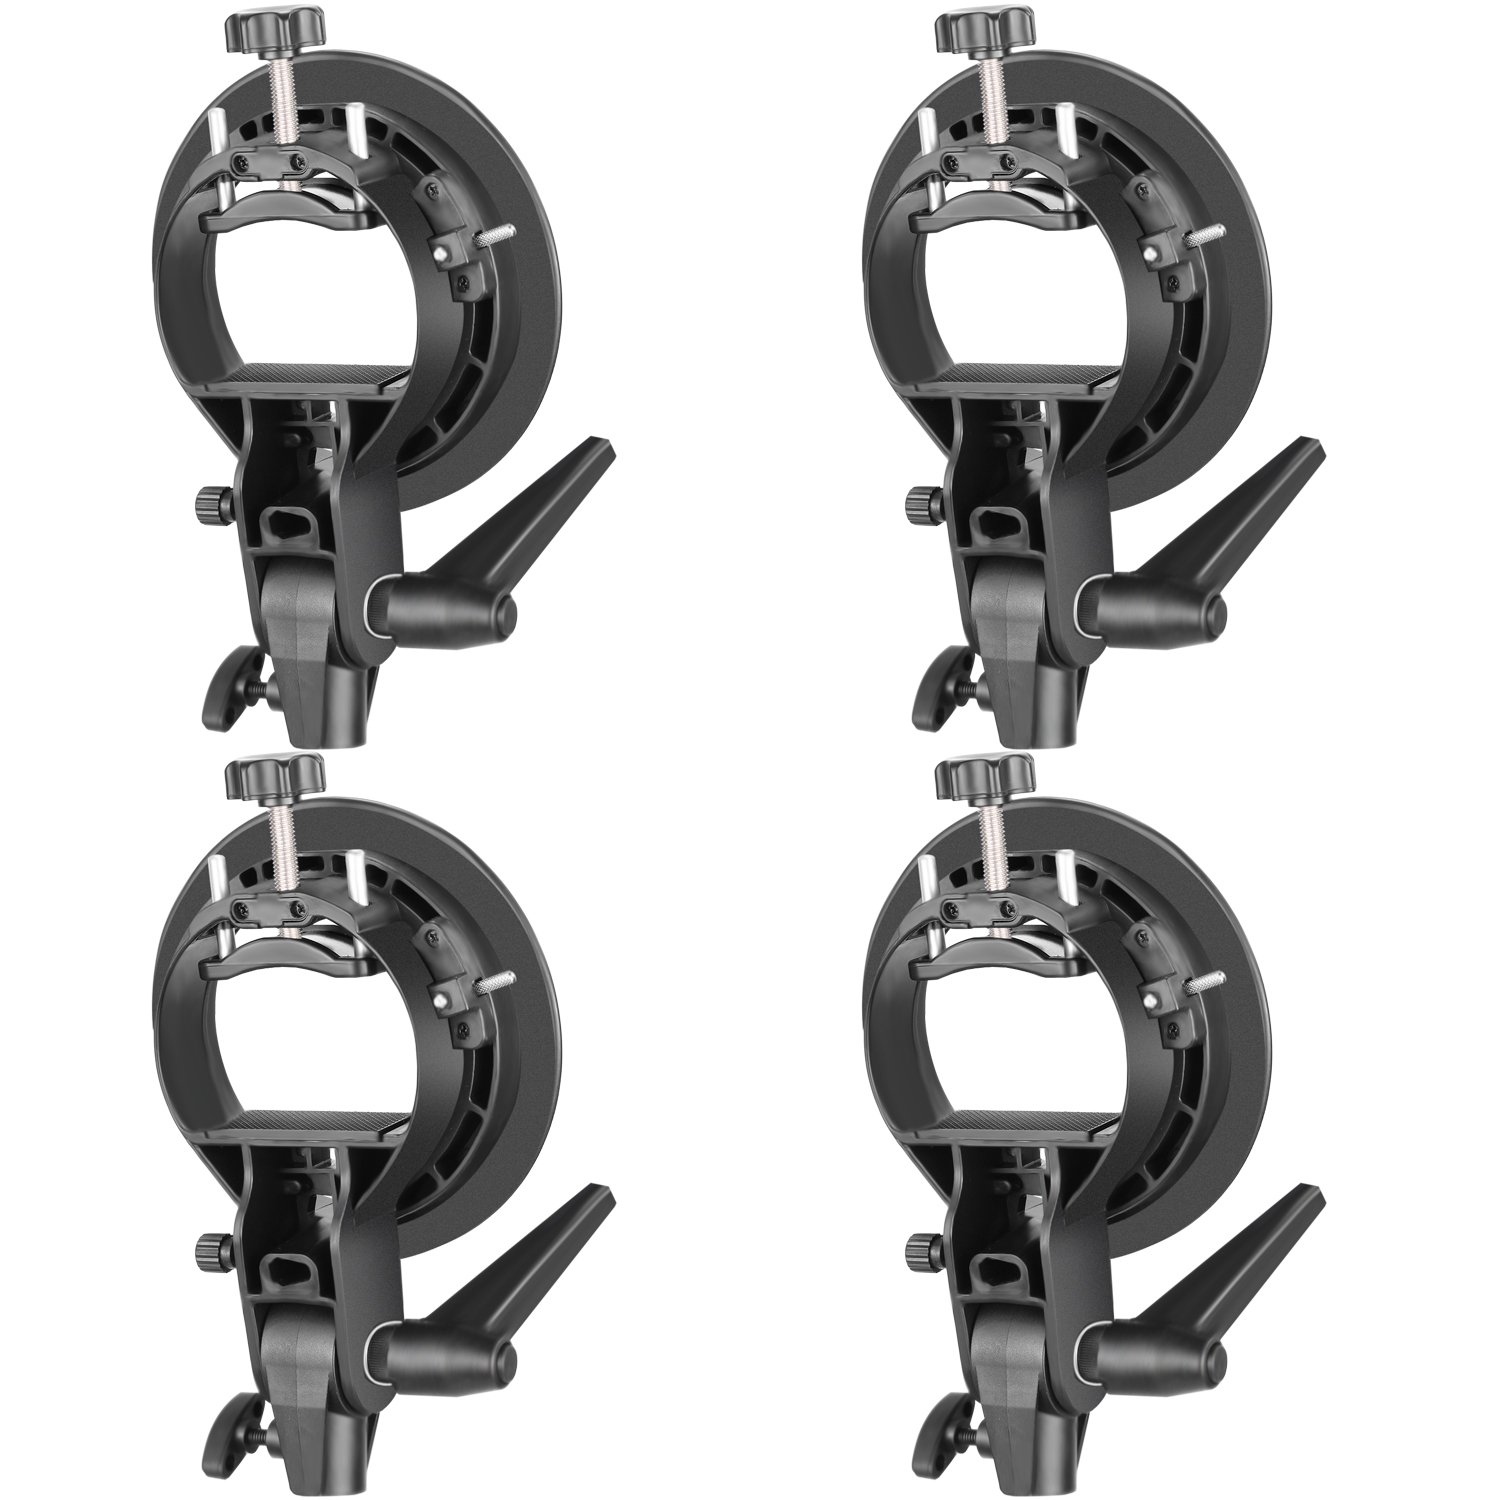 Neewer 4 Packs S-Type Bracket Holder with Bowens Mount for Speedlite Flash Snoot Softbox Beauty Dish Reflector Umbrella by Neewer